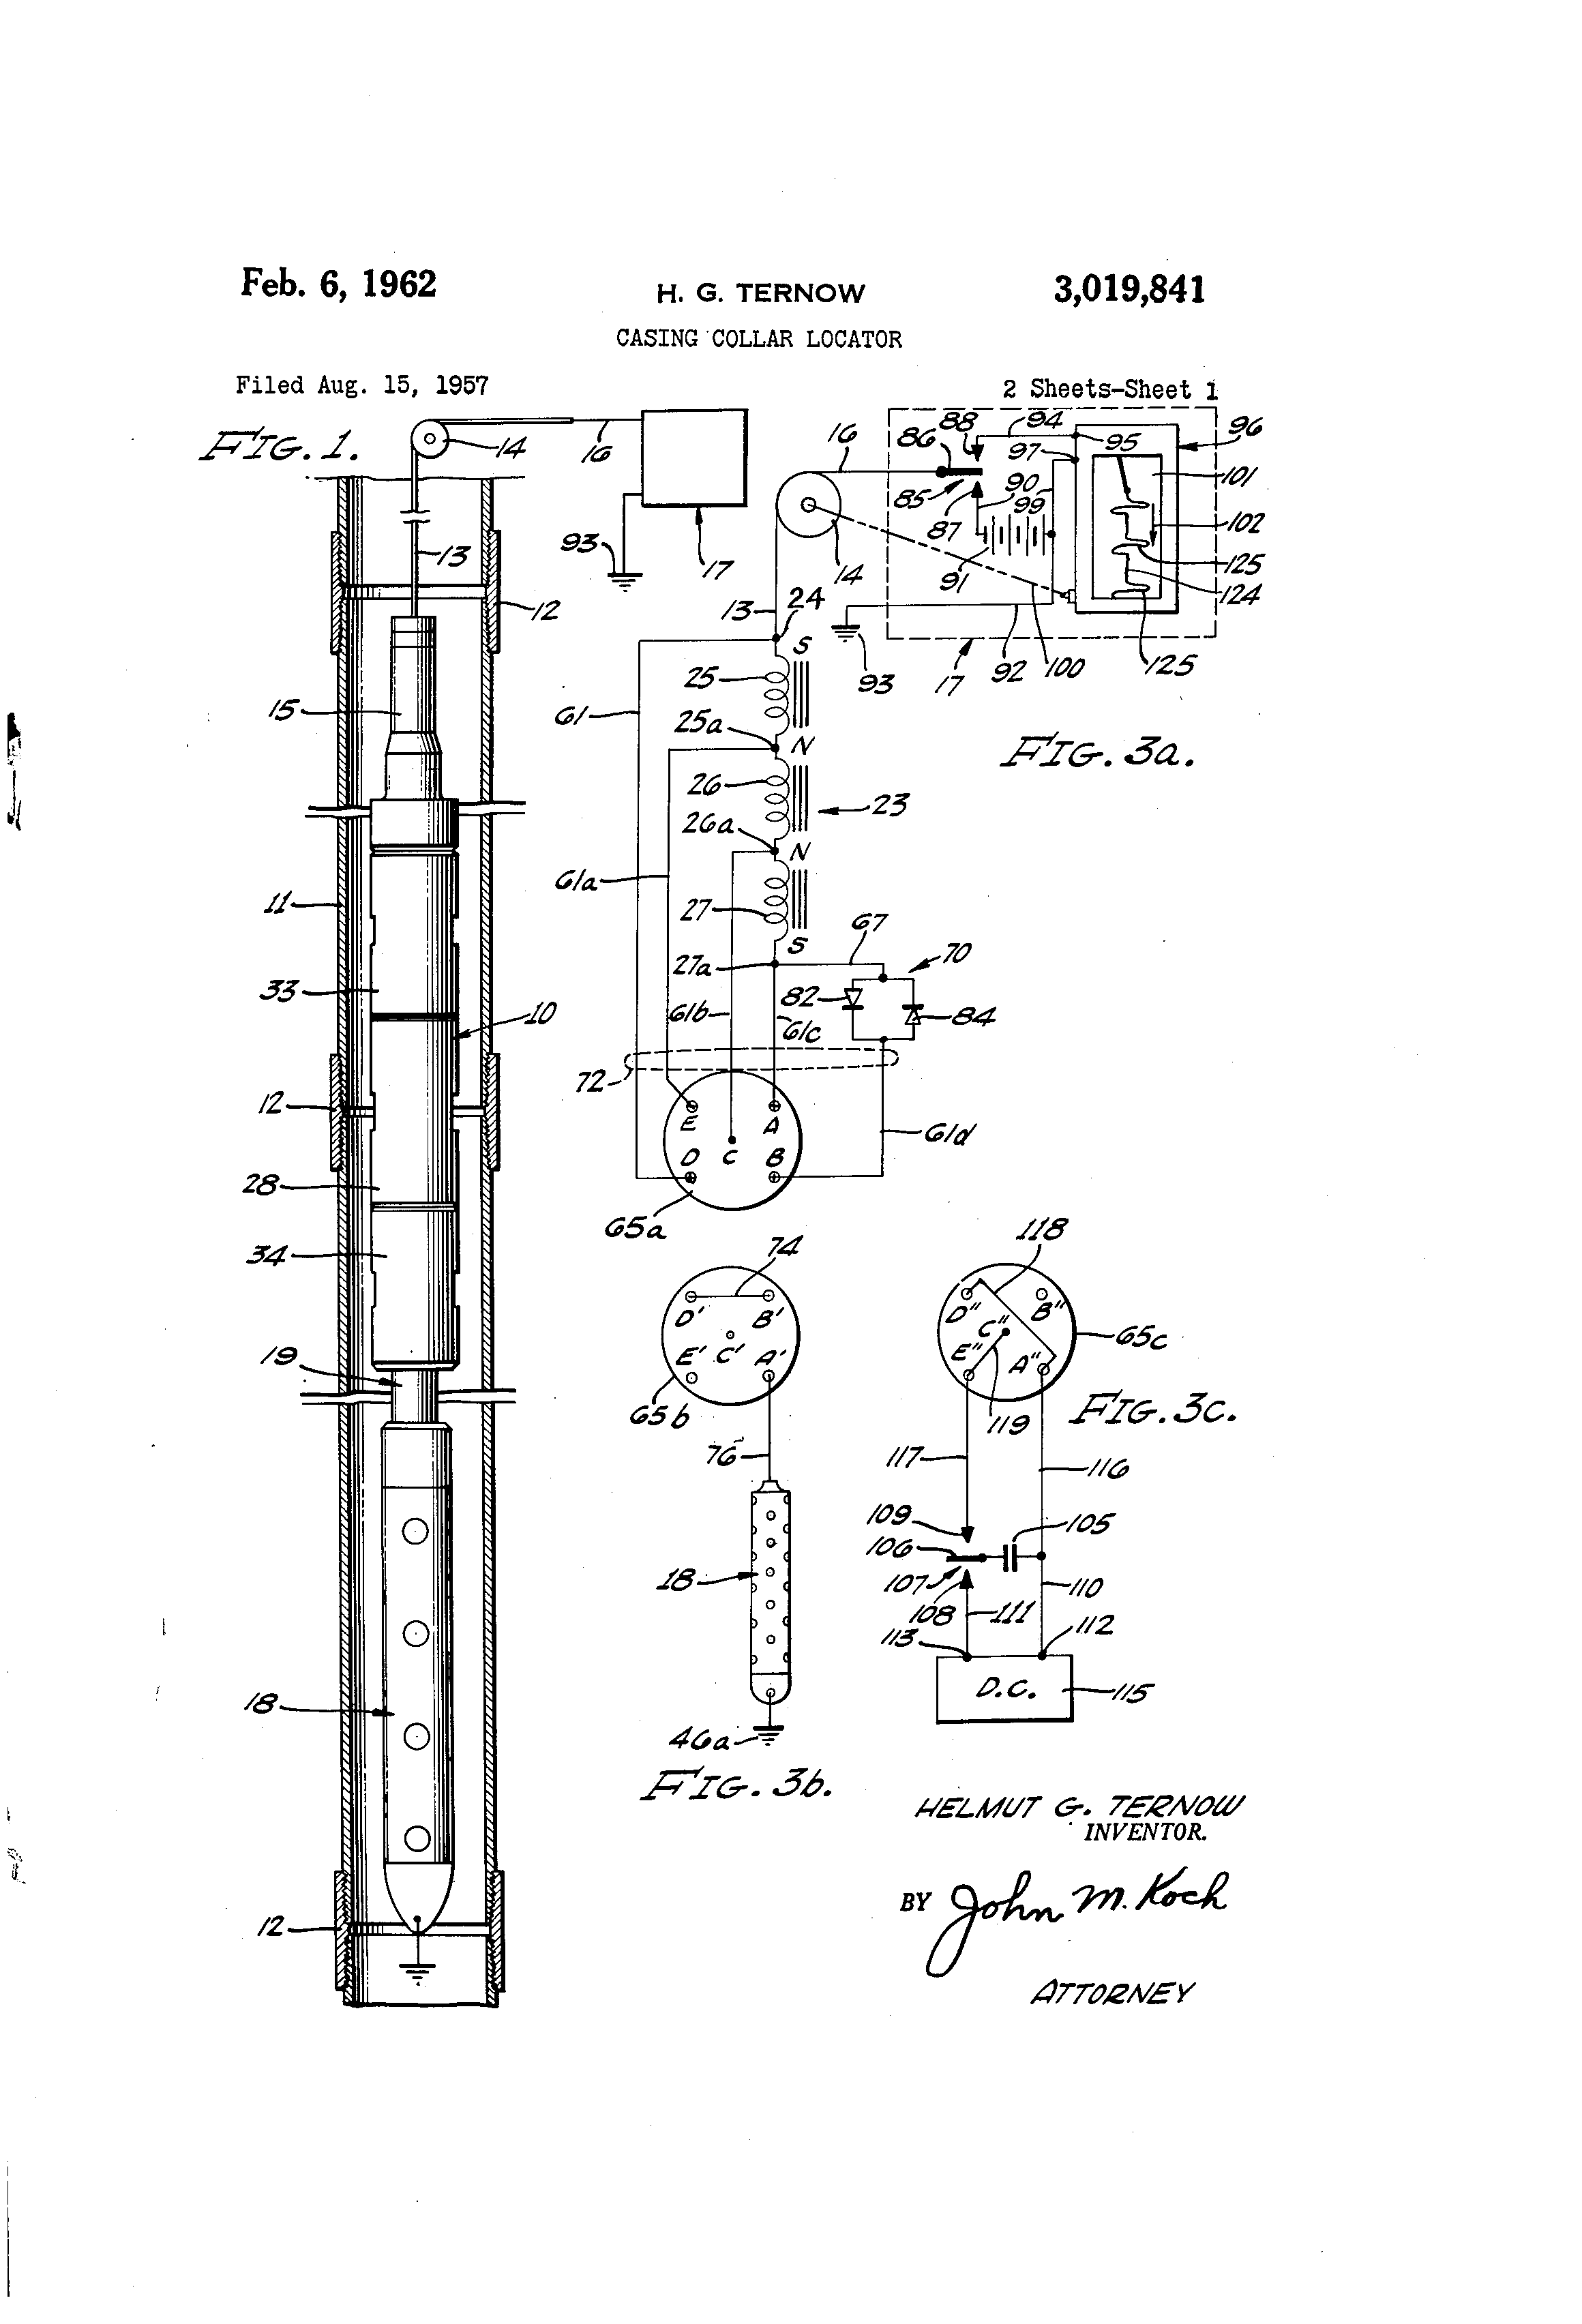 patent us3019841 - casing collar locator